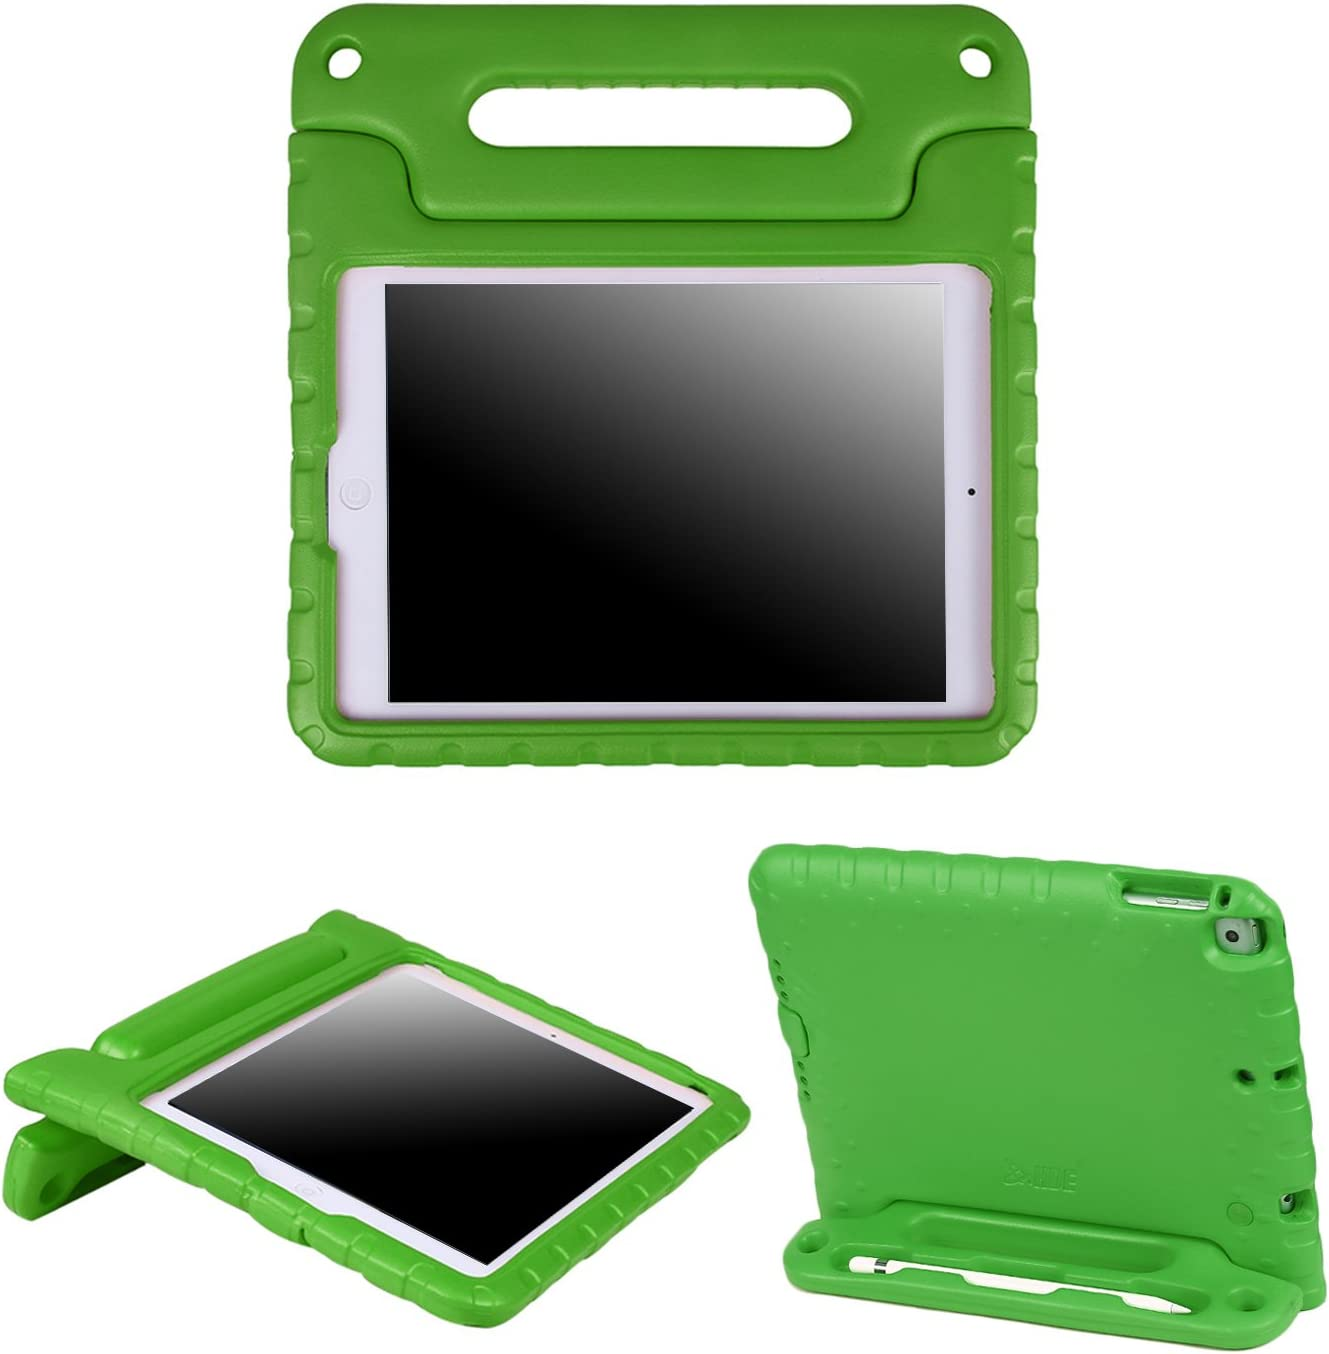 HDE iPad 6th Generation Case for Kids – iPad 9.7 inch 5th and 6th Generation Cases for Kids Shock Proof Protective Light Weight Cover with Handle Stand for Apple iPad 9.7 with Pencil Holder - Green